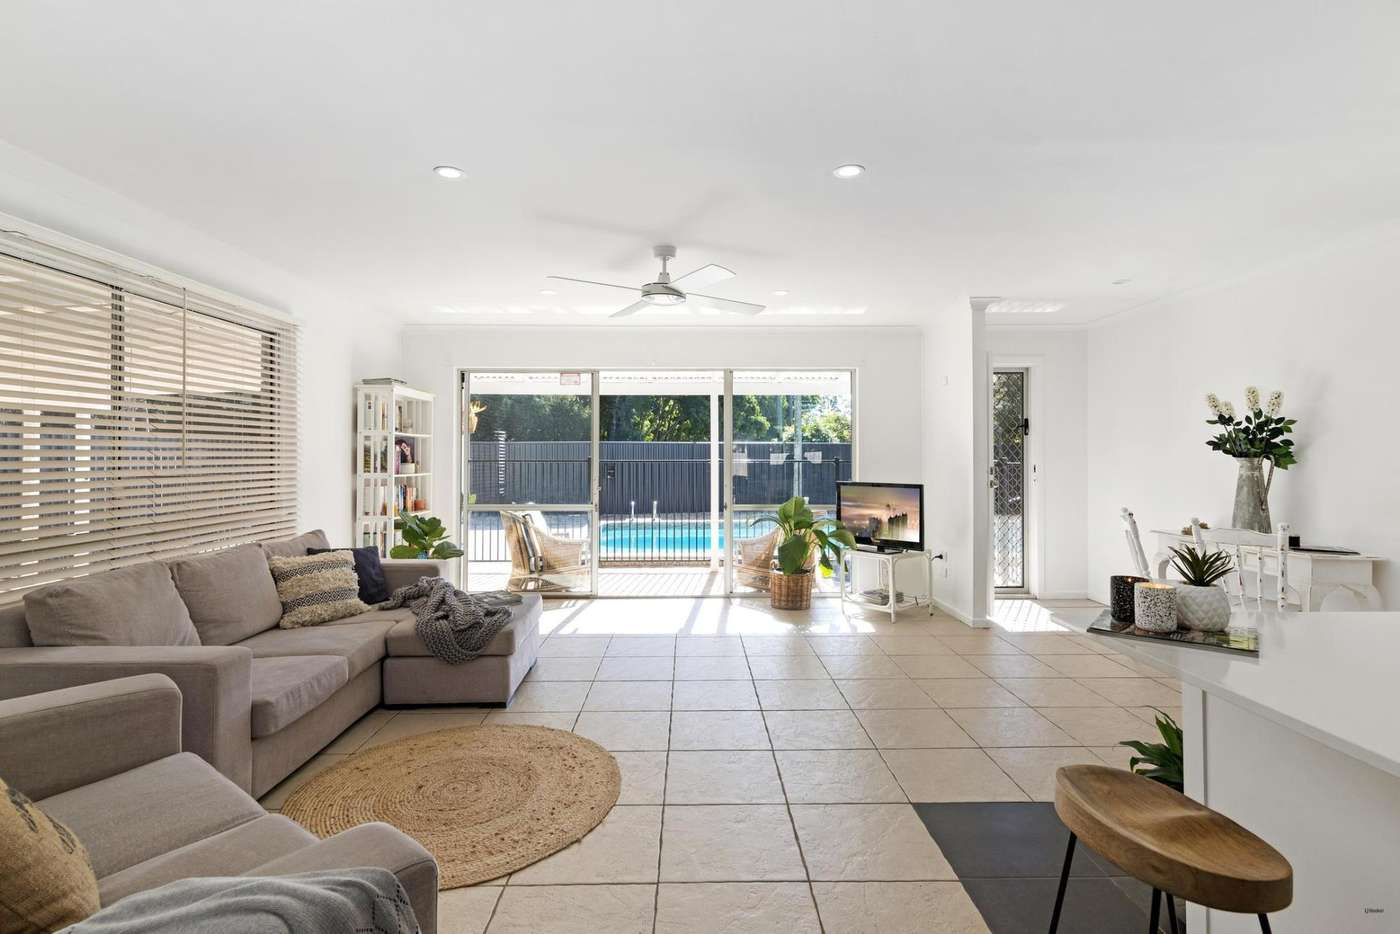 Main view of Homely house listing, 24 Cuba Avenue, Palm Beach QLD 4221